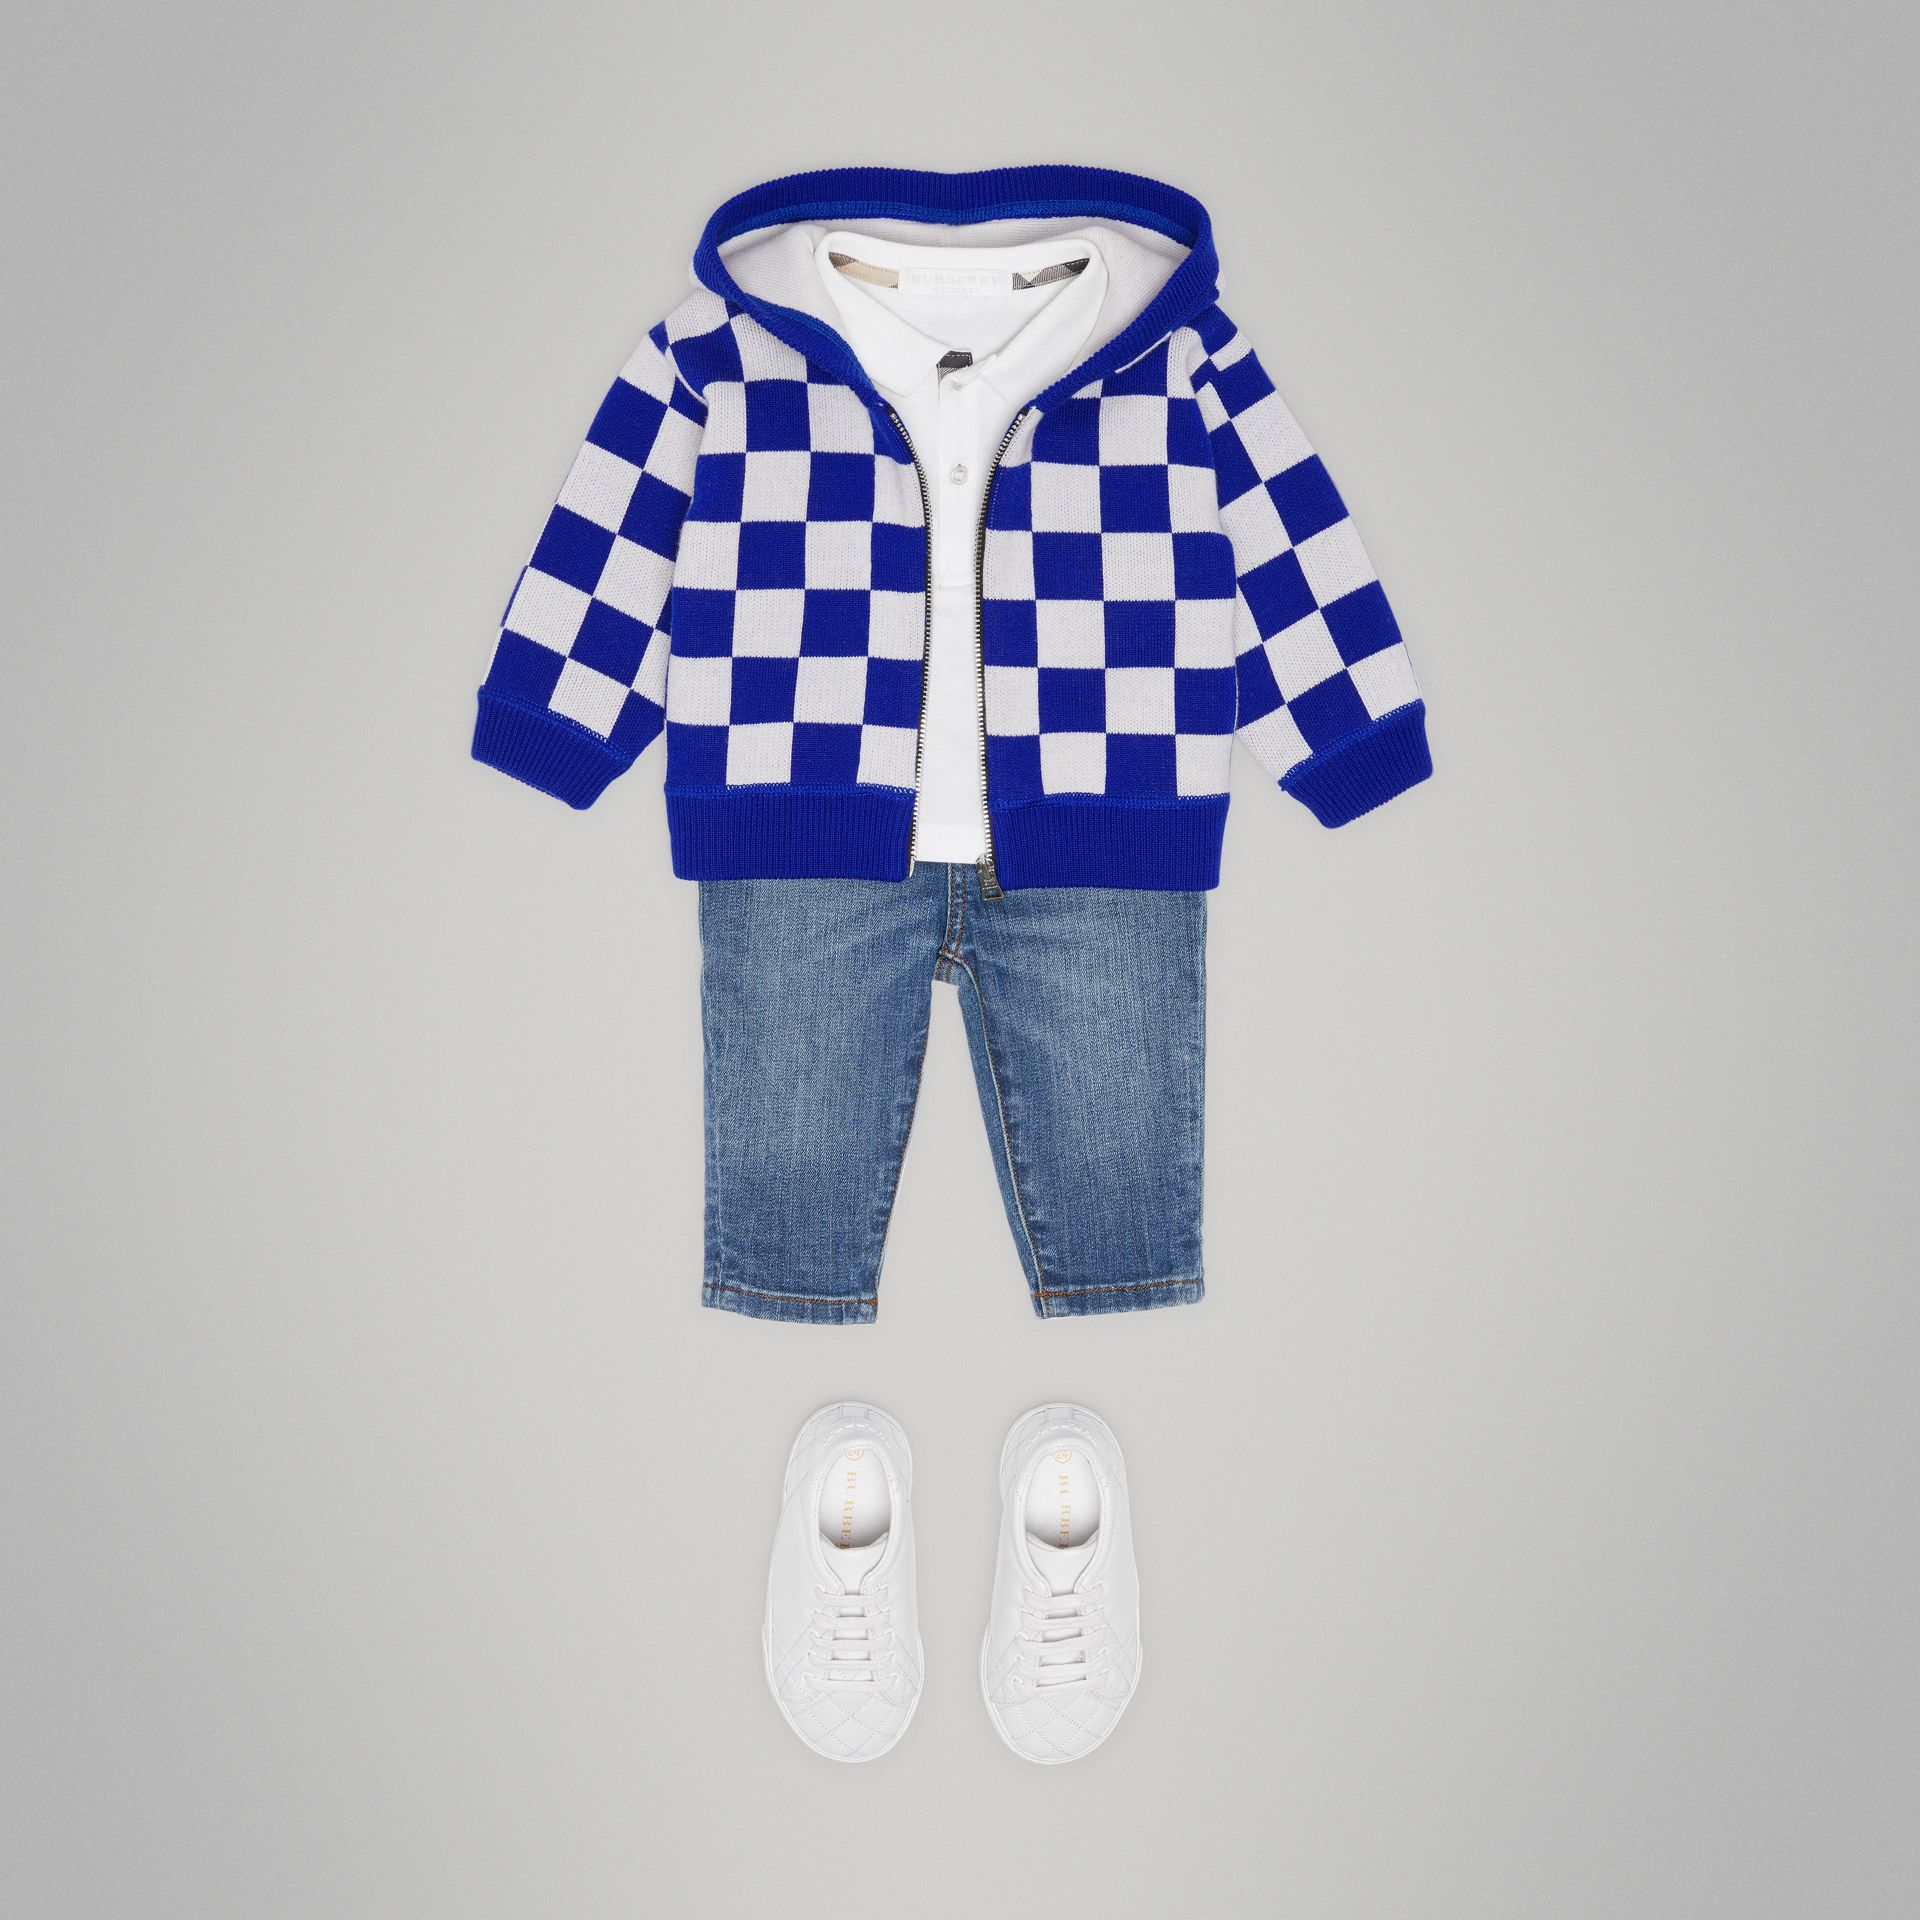 Chequer Merino Wool Hooded Top in Cobalt Blue - Children | Burberry - gallery image 2